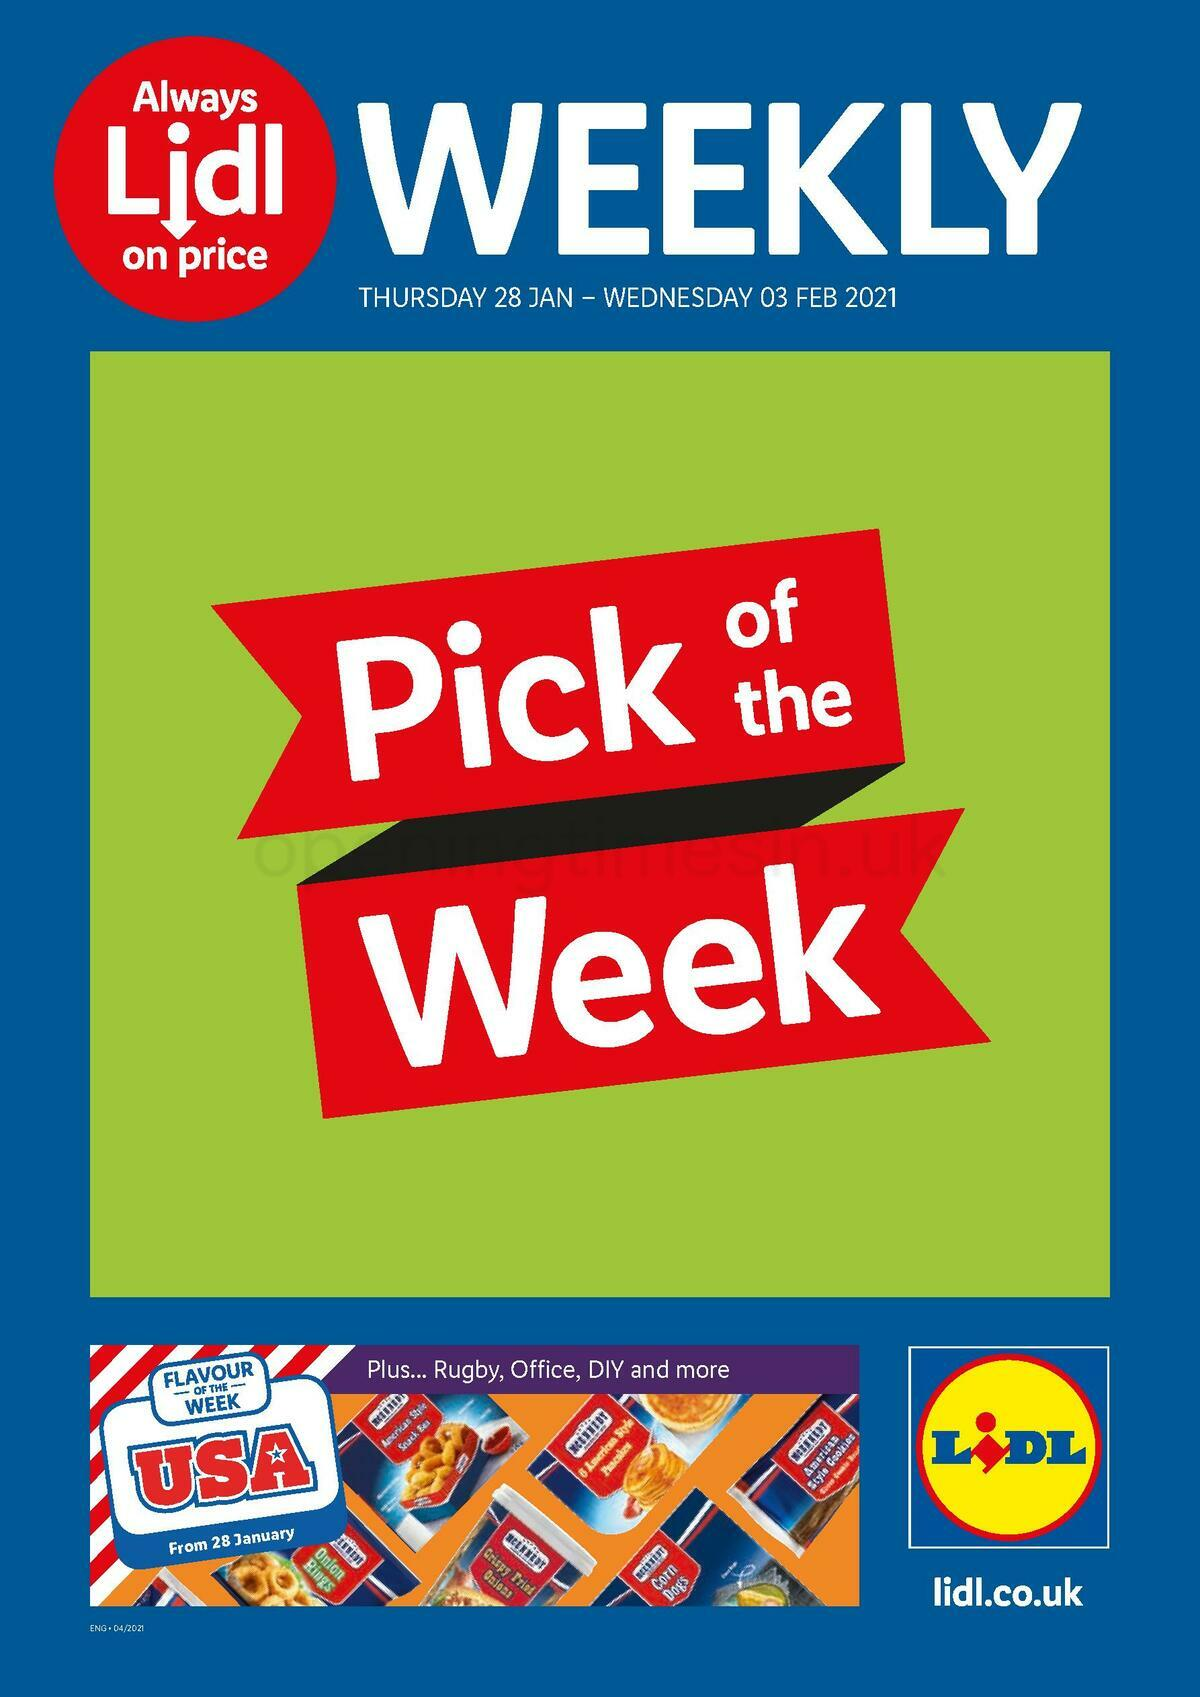 LIDL Offers from January 28